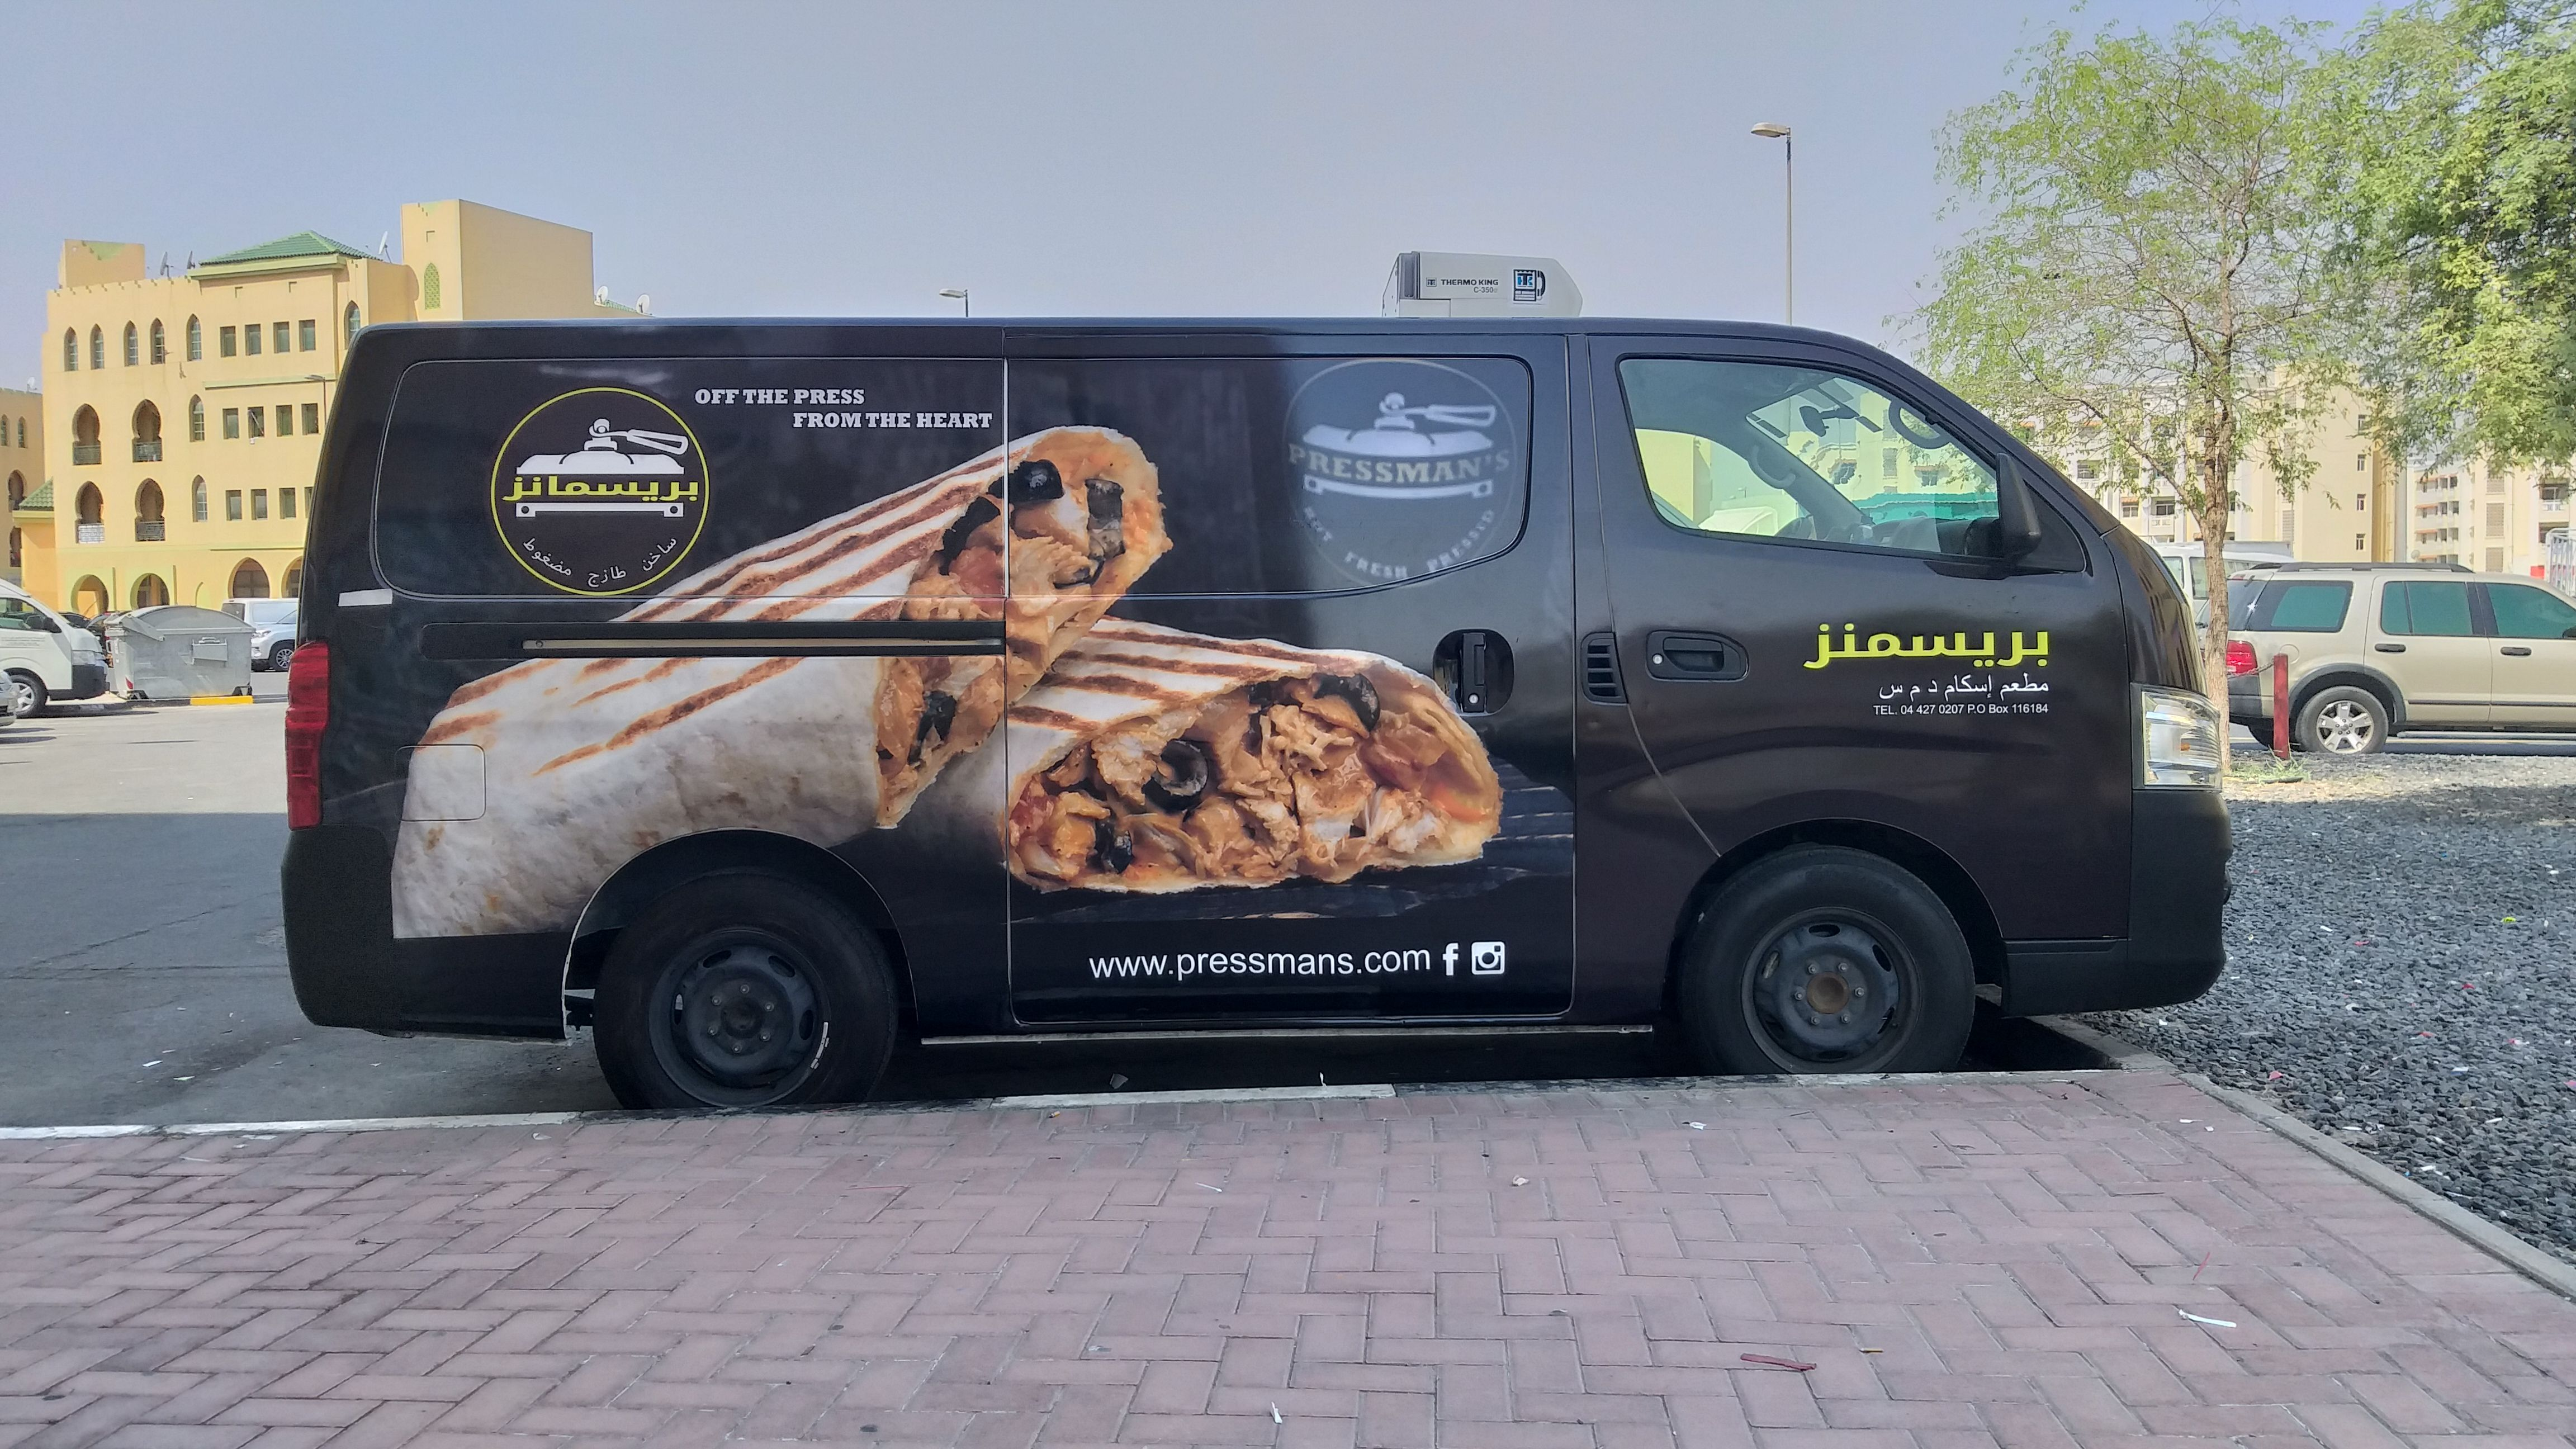 Vehicle Branding Car Stickers Bus Wrapping Vehicle Advertisement In Dubai Car Brands Car Stickers Branding [ 2592 x 4608 Pixel ]